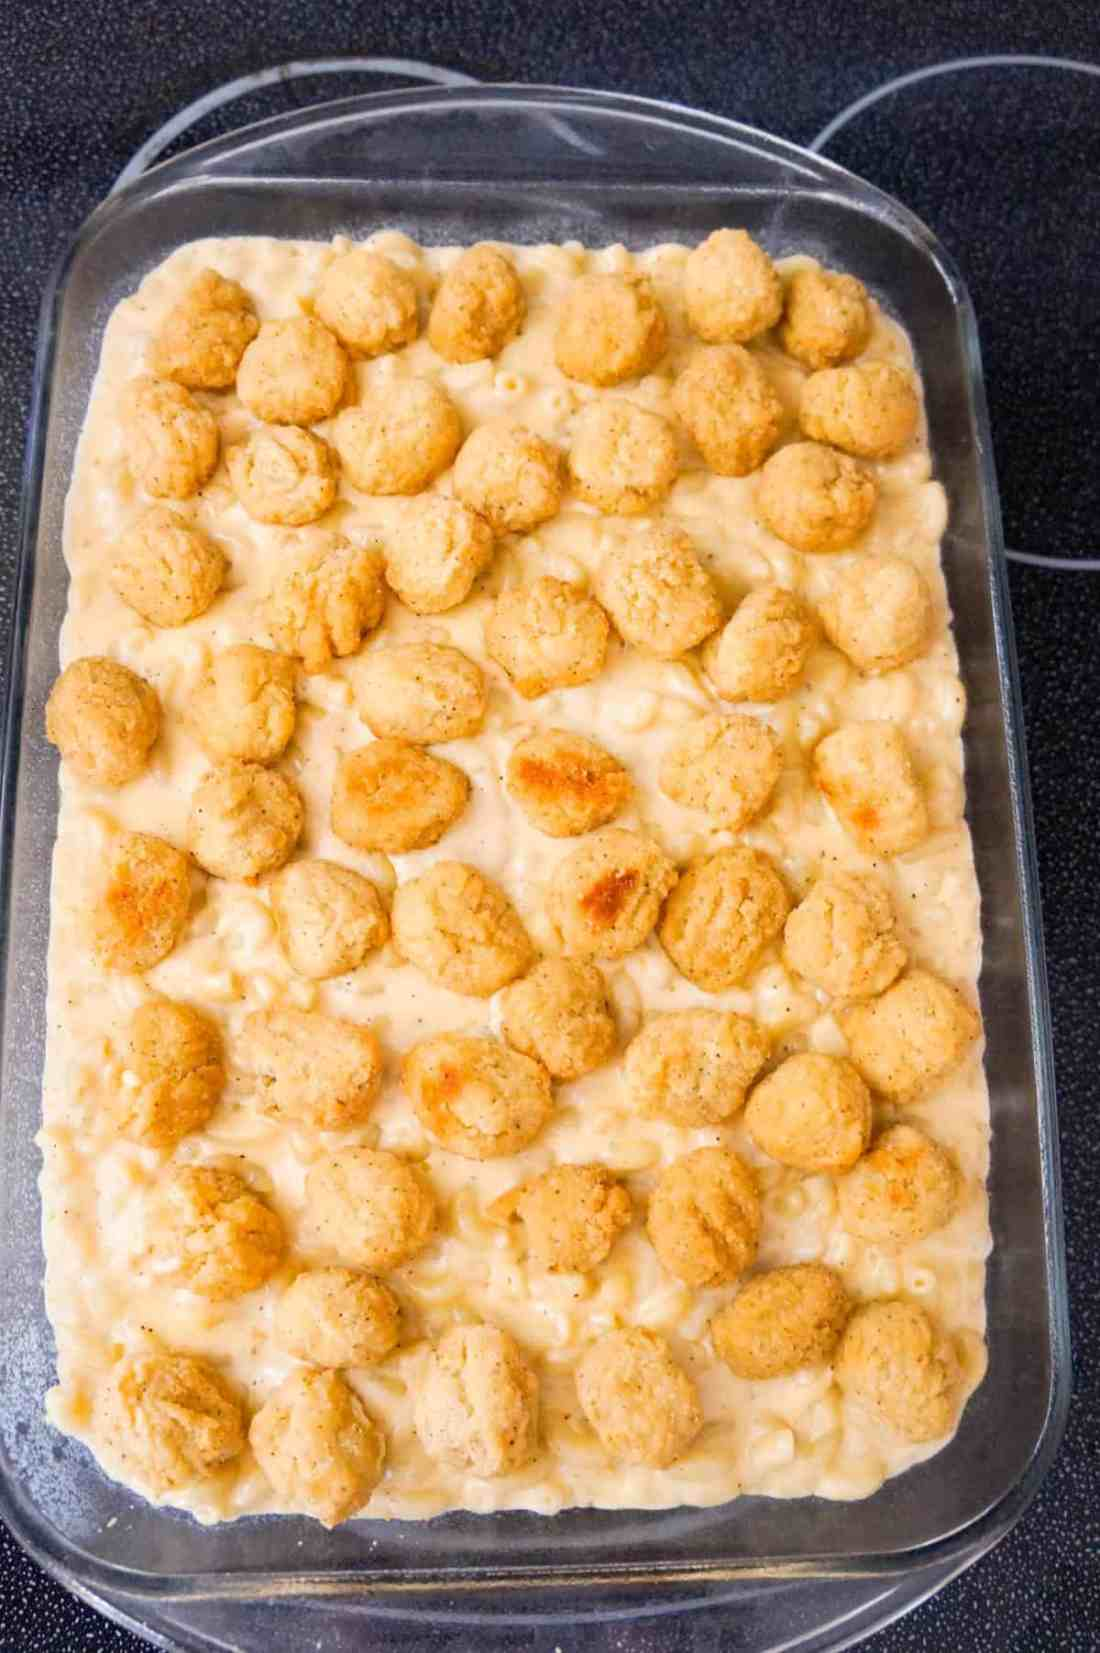 popcorn chicken on top of mac and cheese in a baking dish